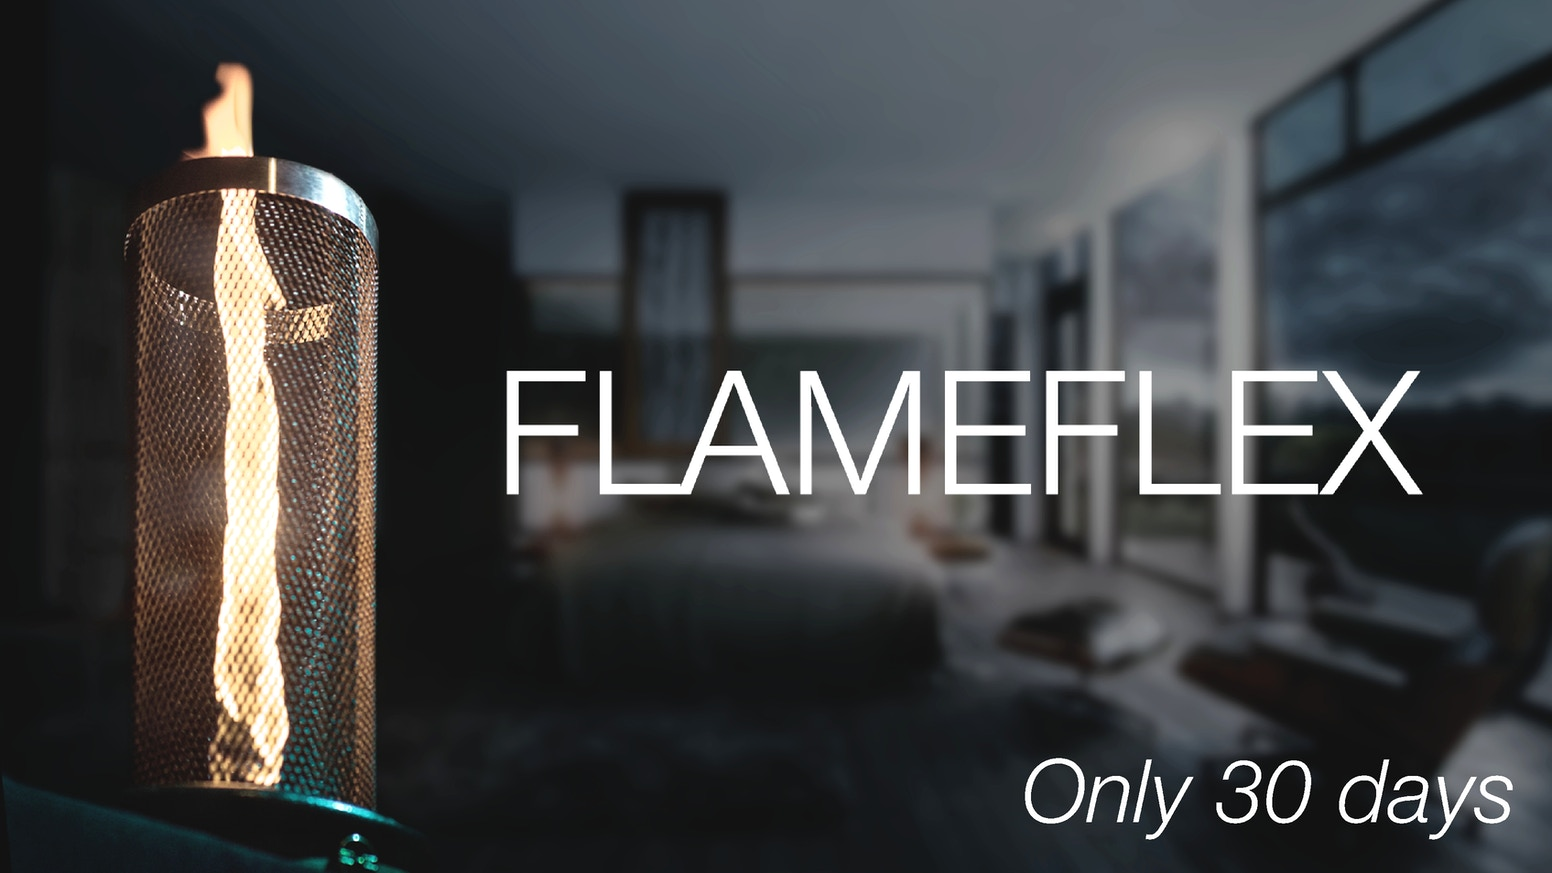 Add some romance to your life! Impress your friends with timeless beauty of the Firefle.